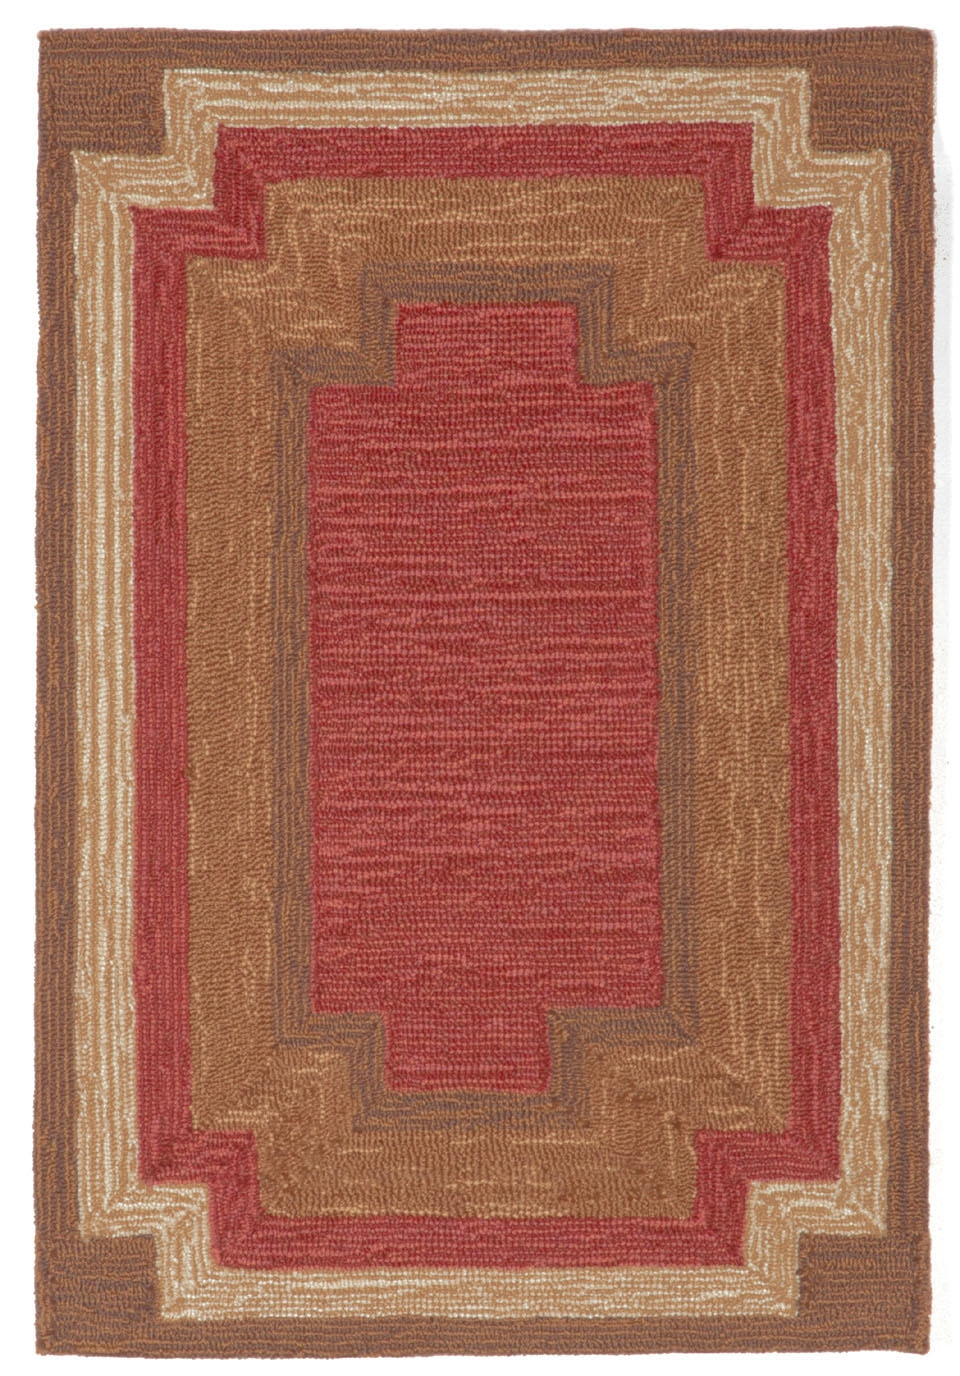 Ravella Border 1905/24 Red Rug by Trans-Ocean